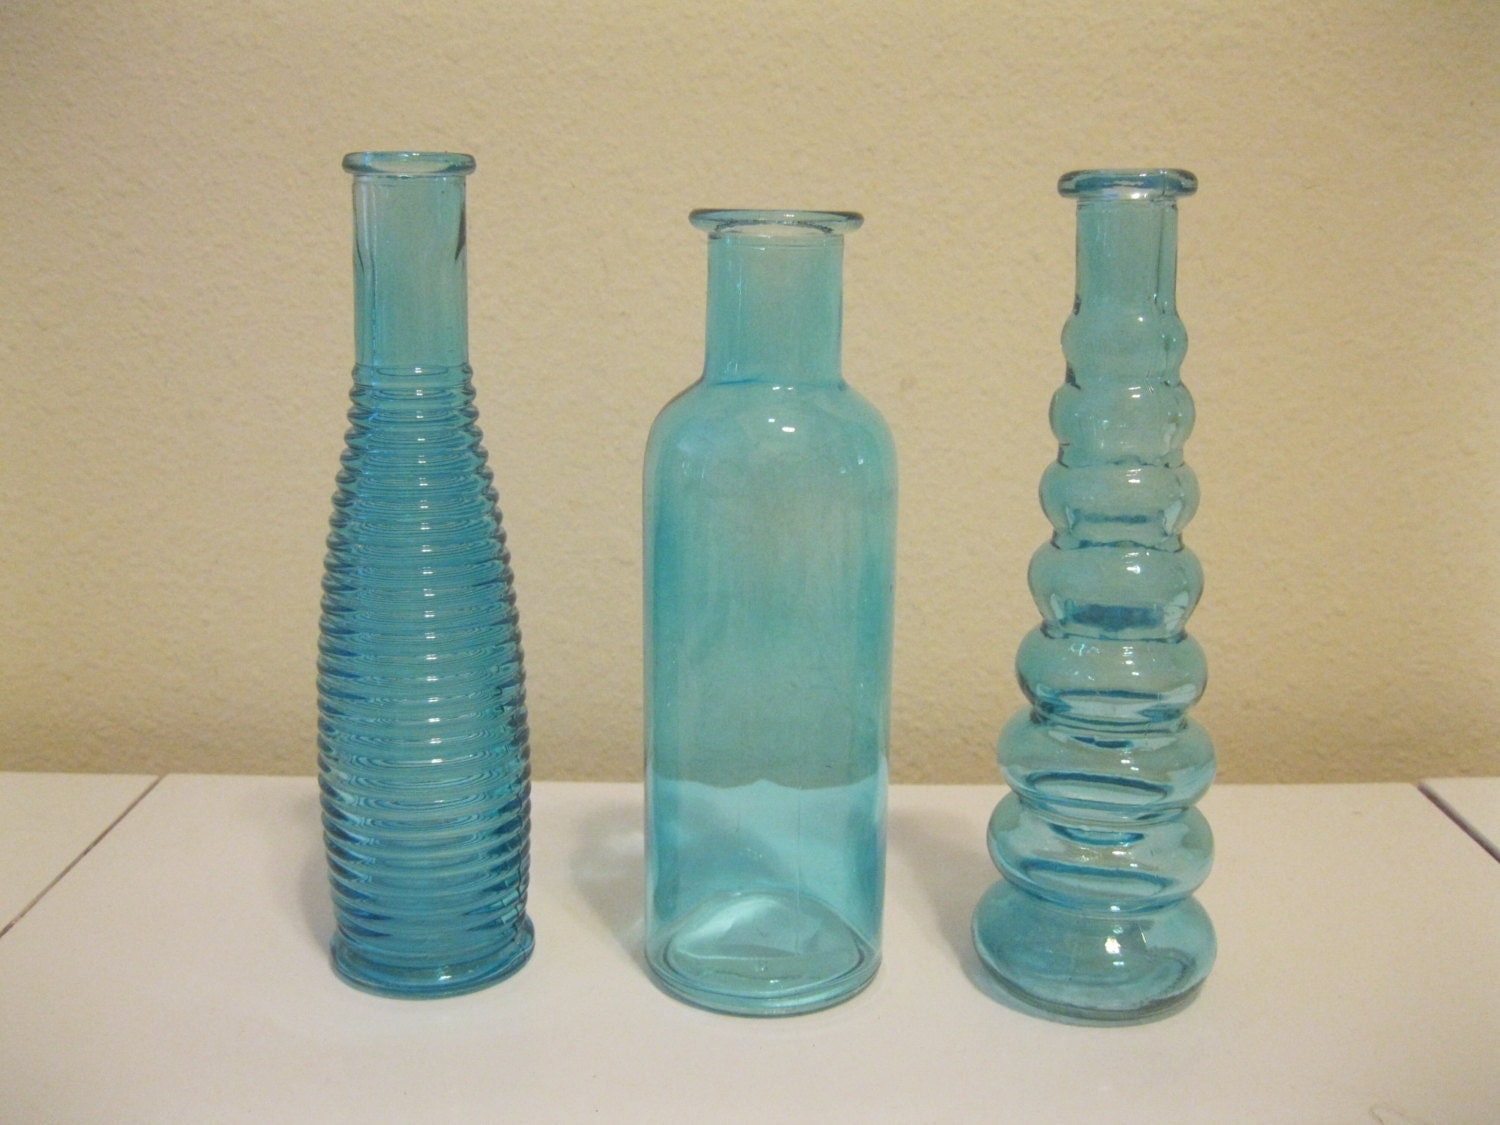 3 Blue Decorative Colored Glass Bottles Floral Bud Vase